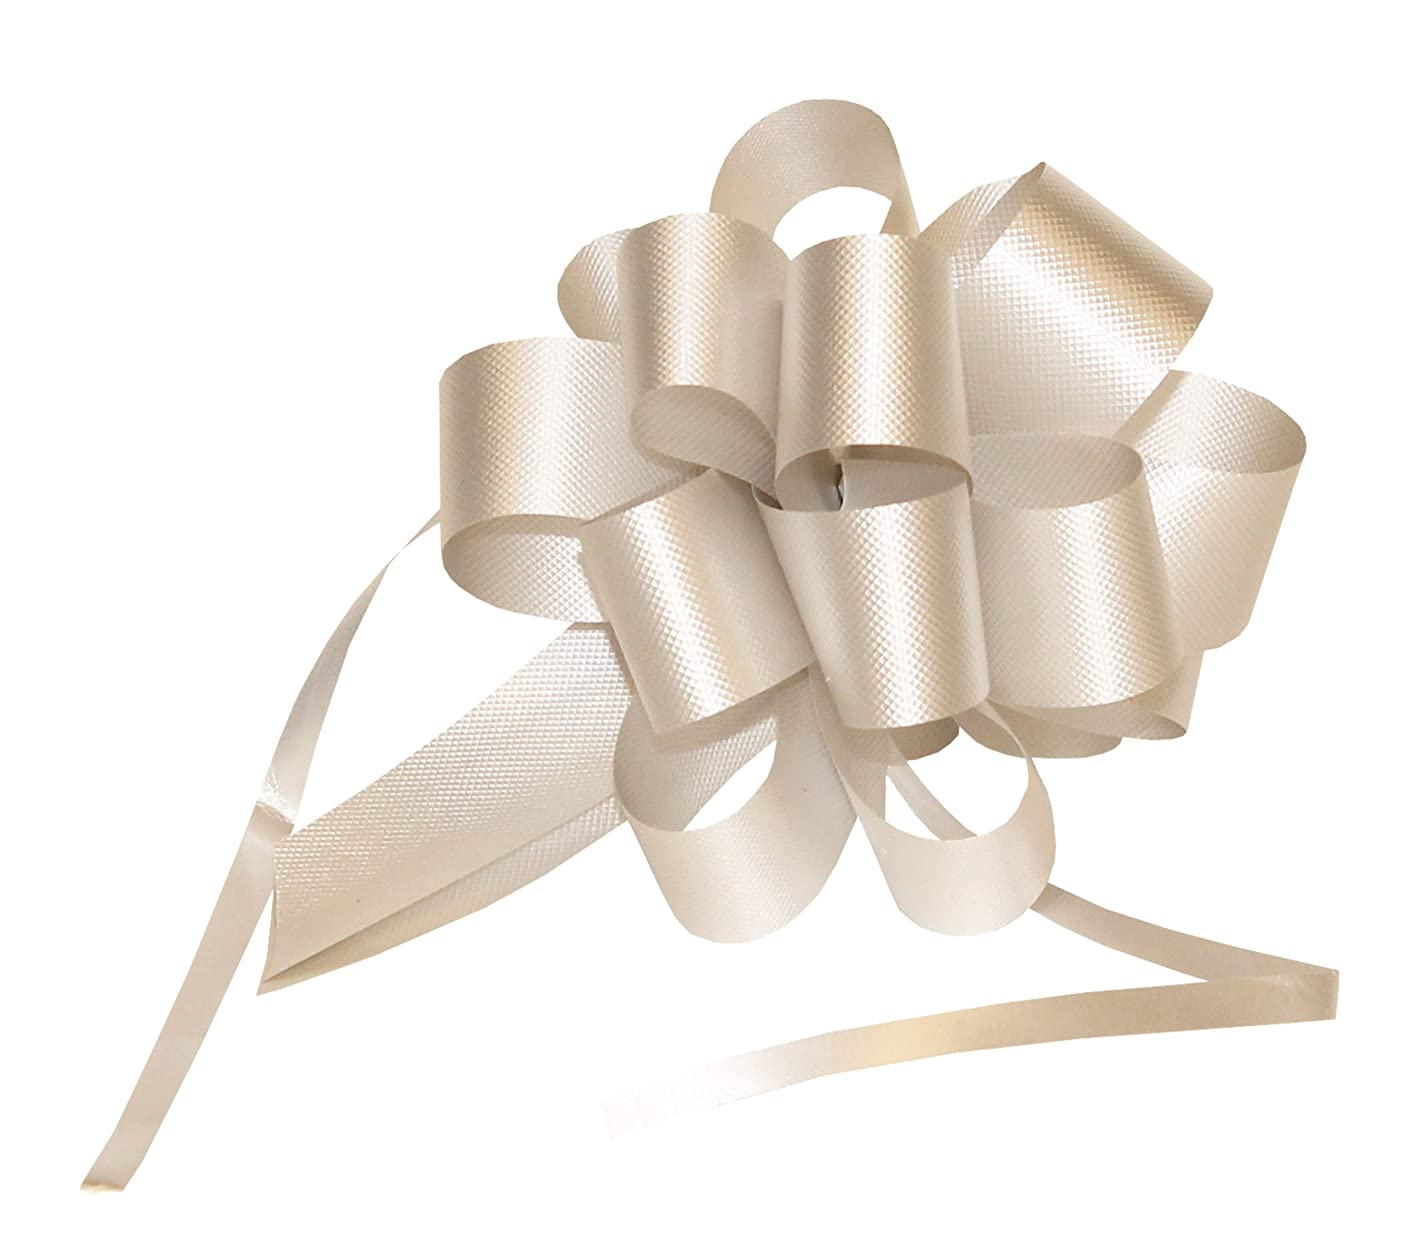 Premier Packaging AMZ-PF520 25 Count Flora Satin Pull Bow, 4 by 18-Inch Loop, Silver